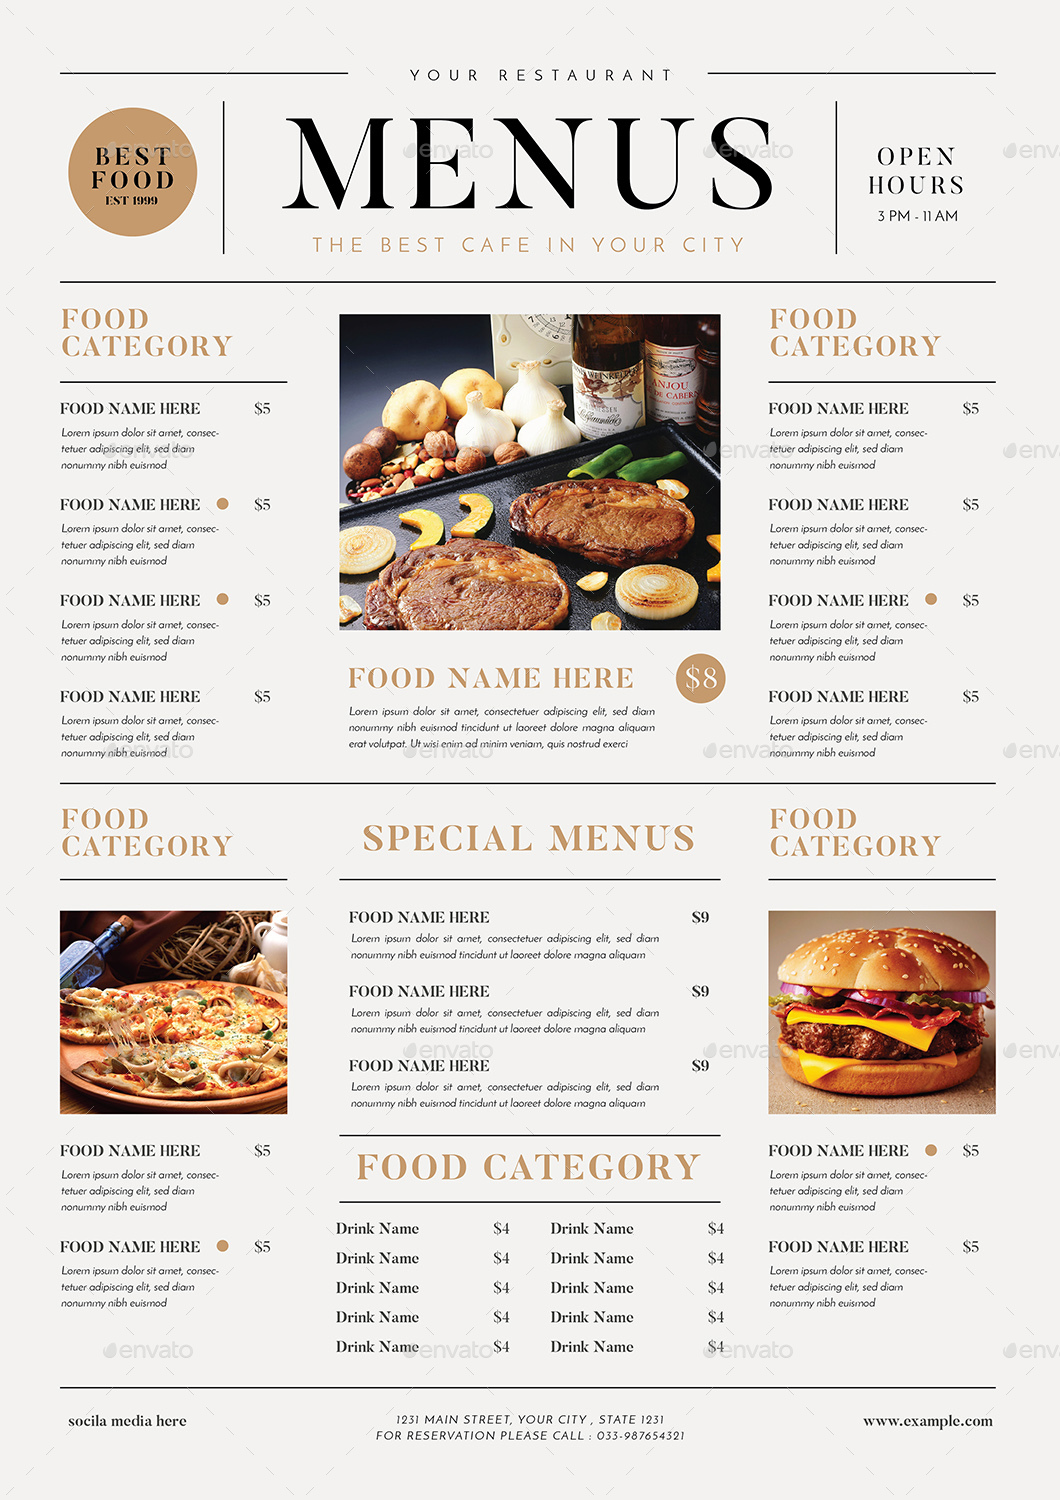 SImple Food Menus